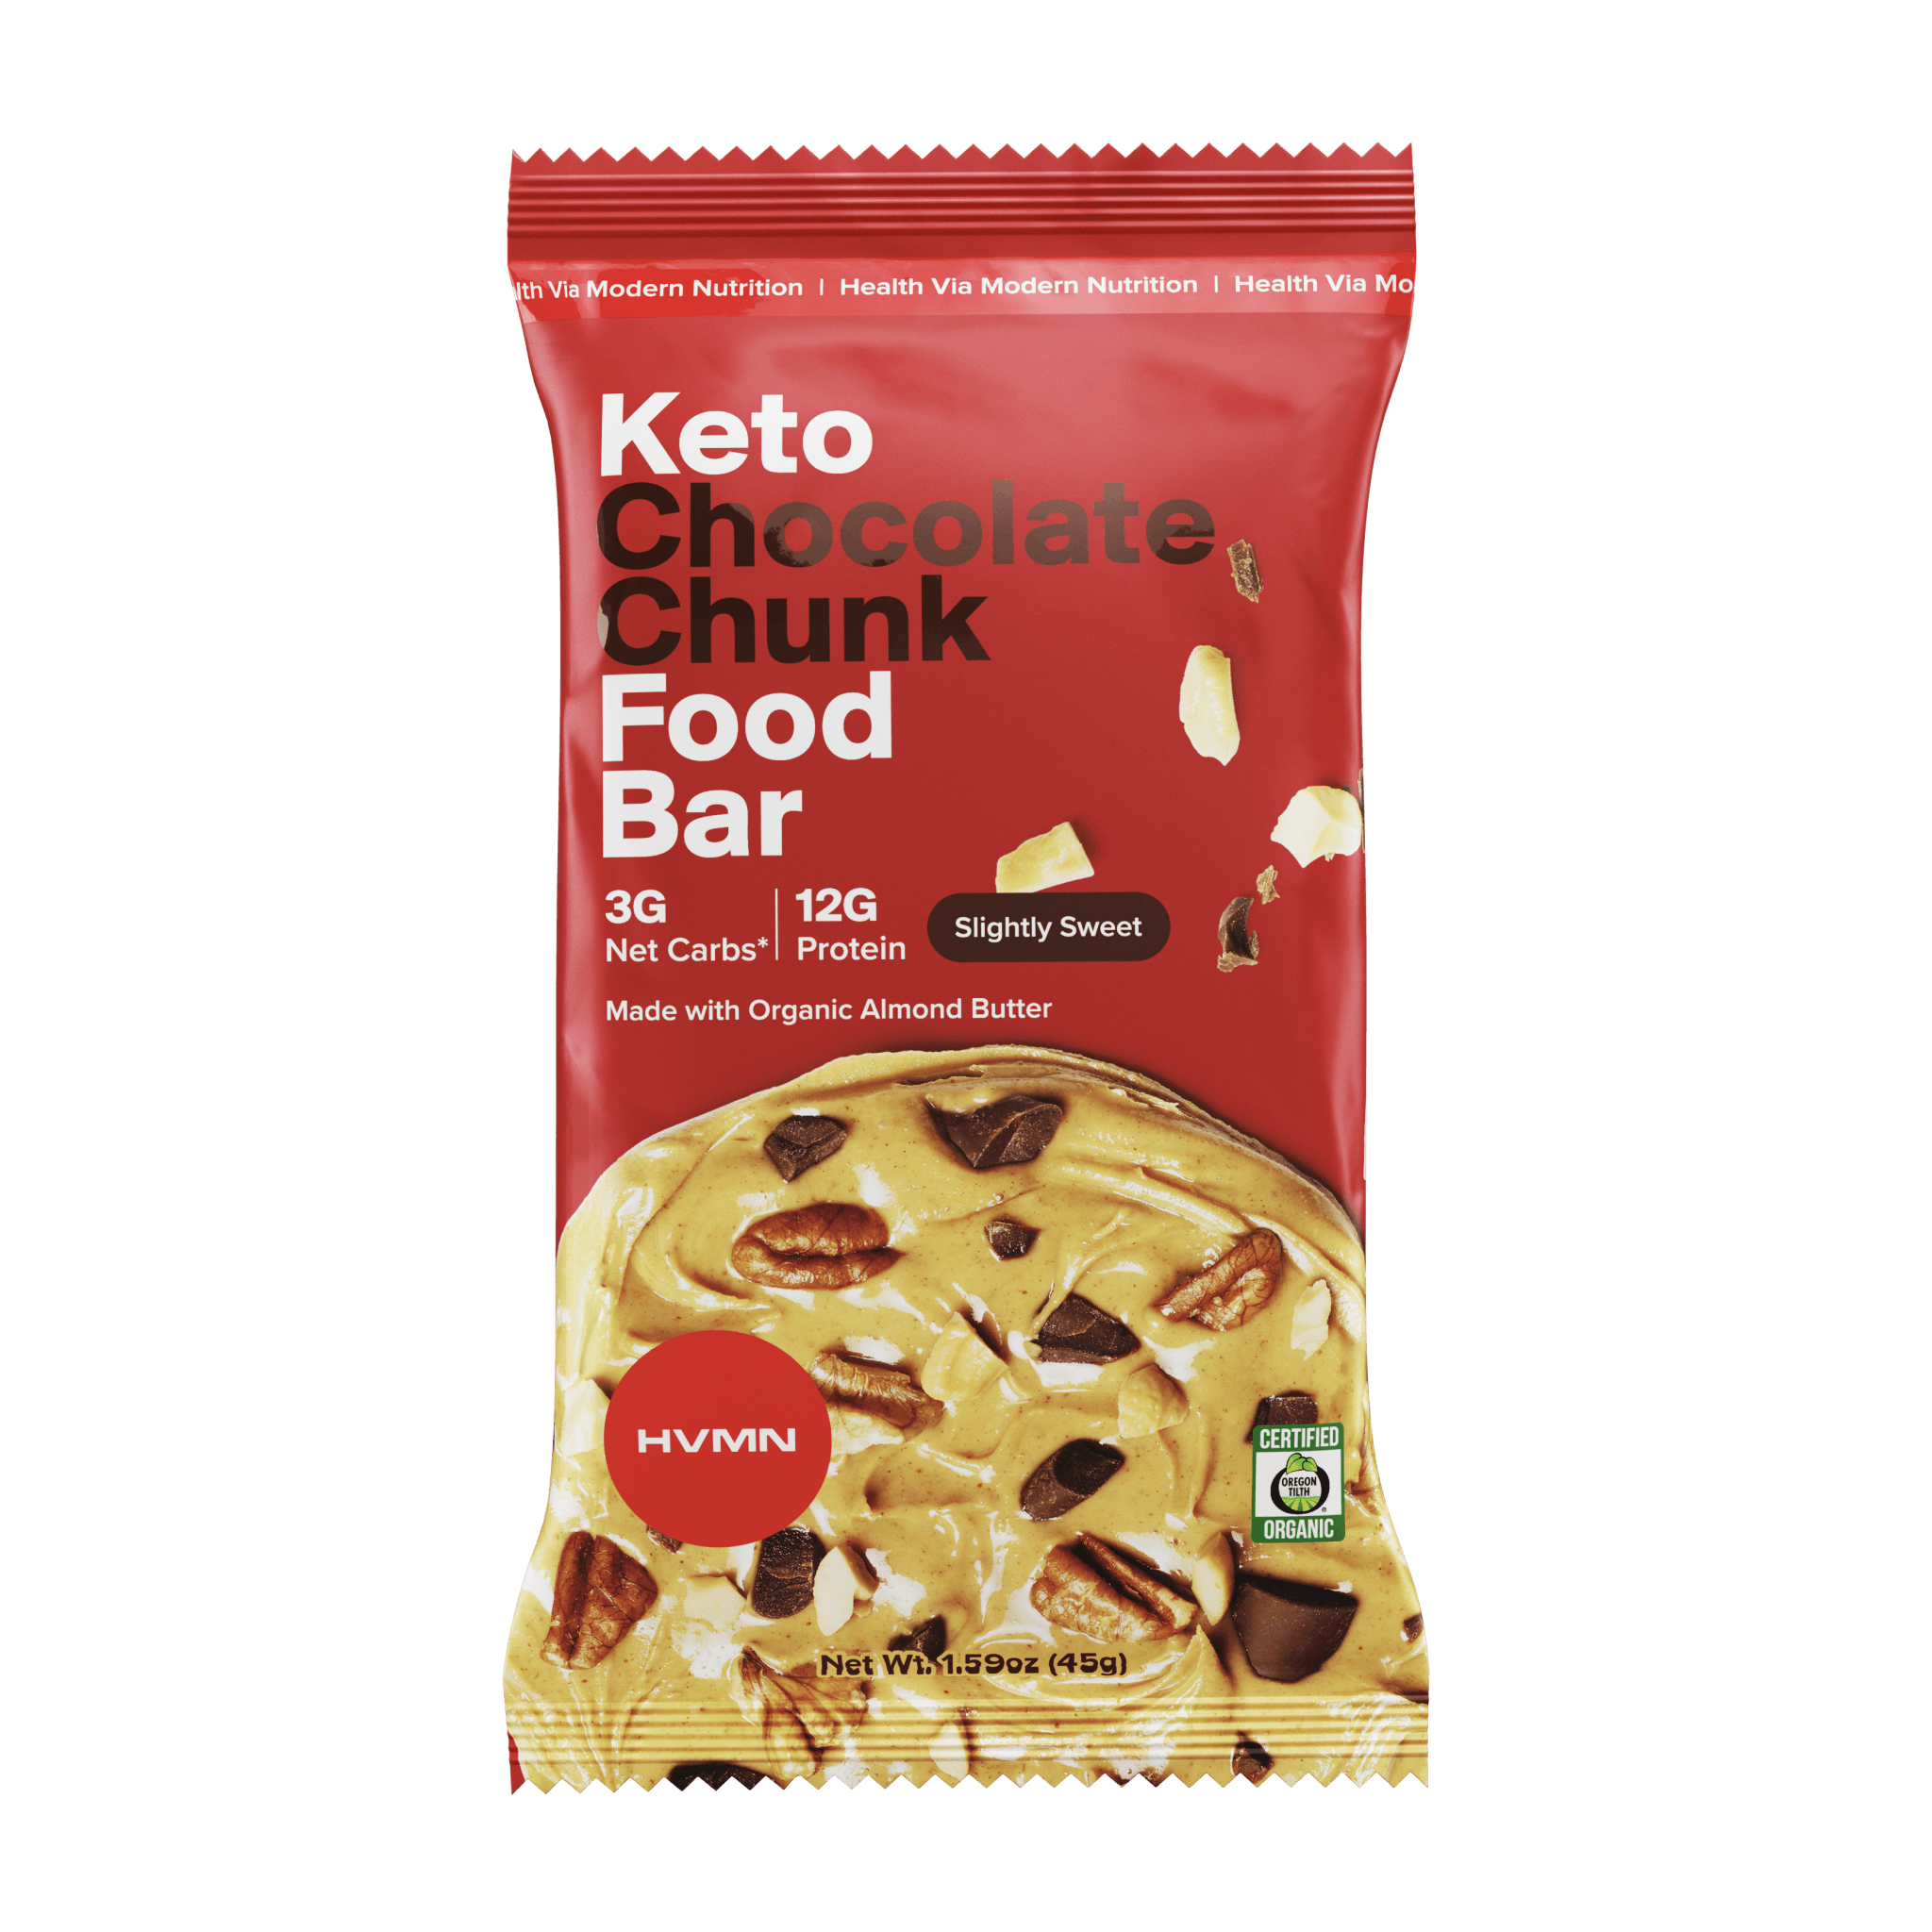 Keto Food Bar - 12 Pack Keto Food Bar H.V.M.N. Chocolate Chunk